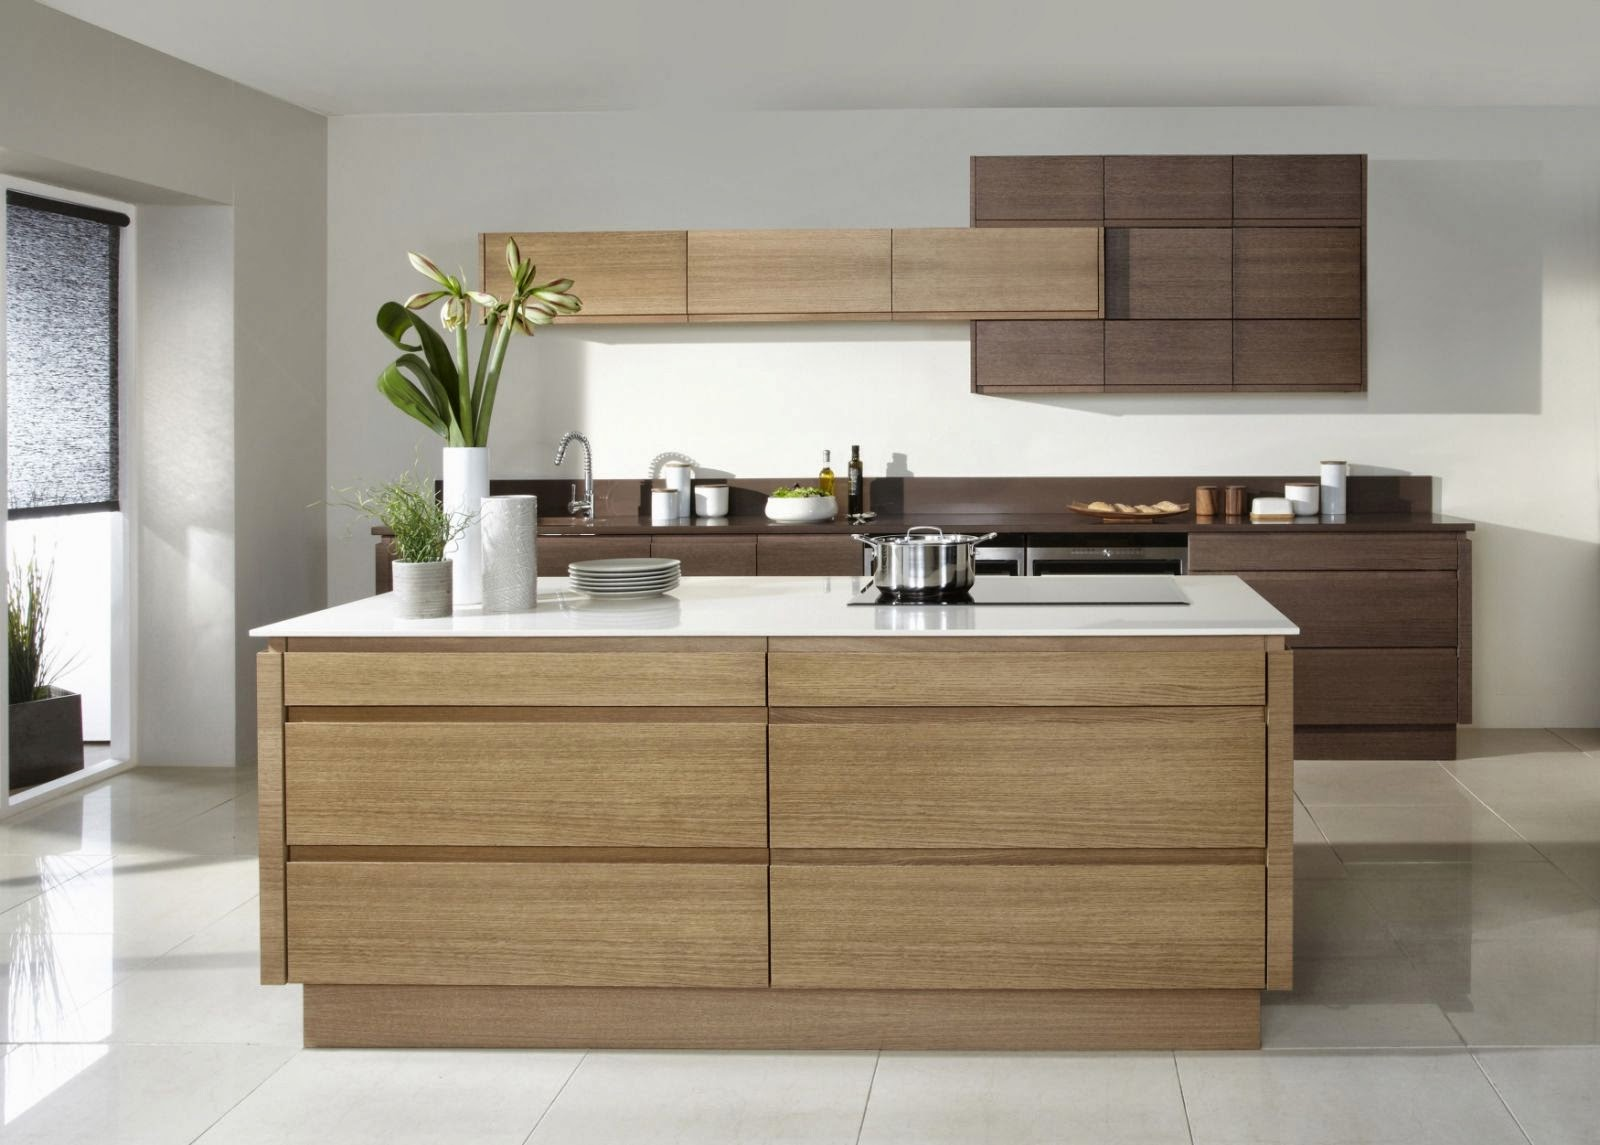 Modern kitchens handleless kitchens Handleless kitchen drawers design